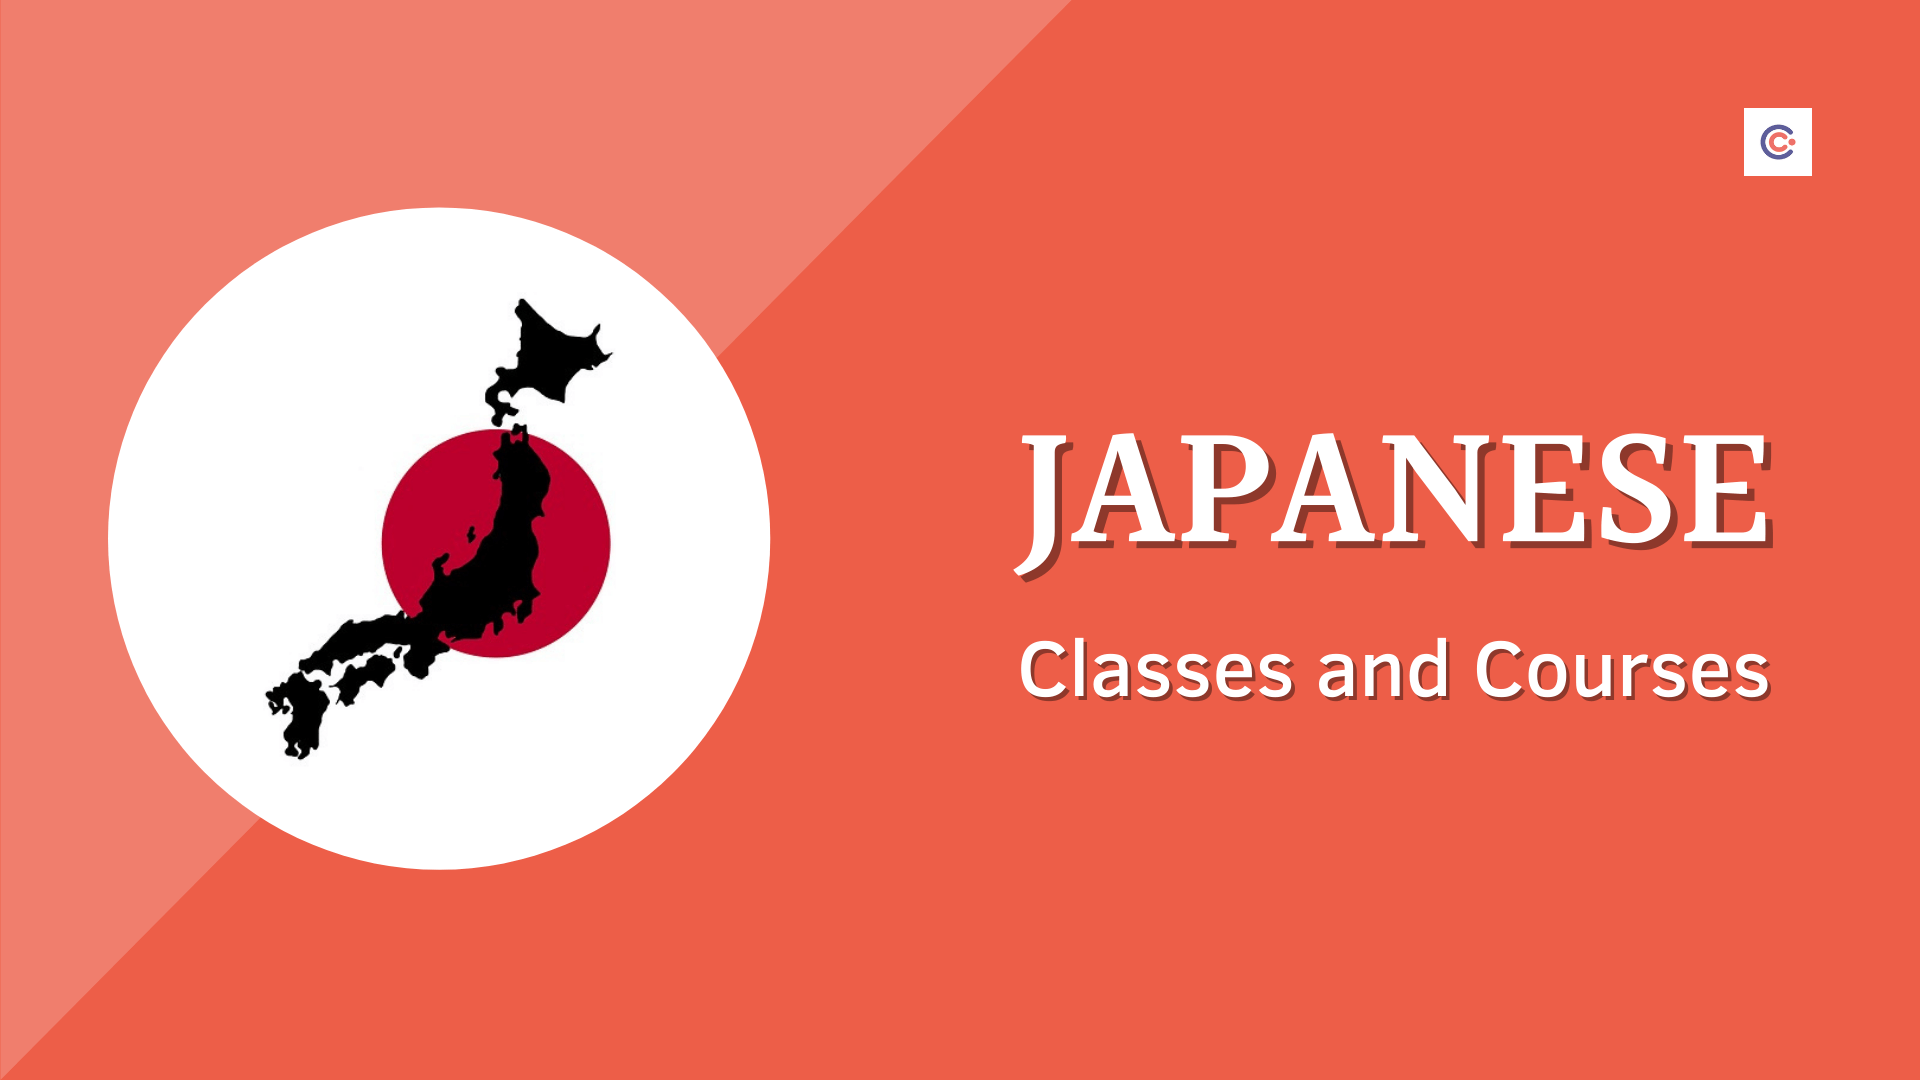 8 Best Japanese Classes & Courses -Learn Japanese Online